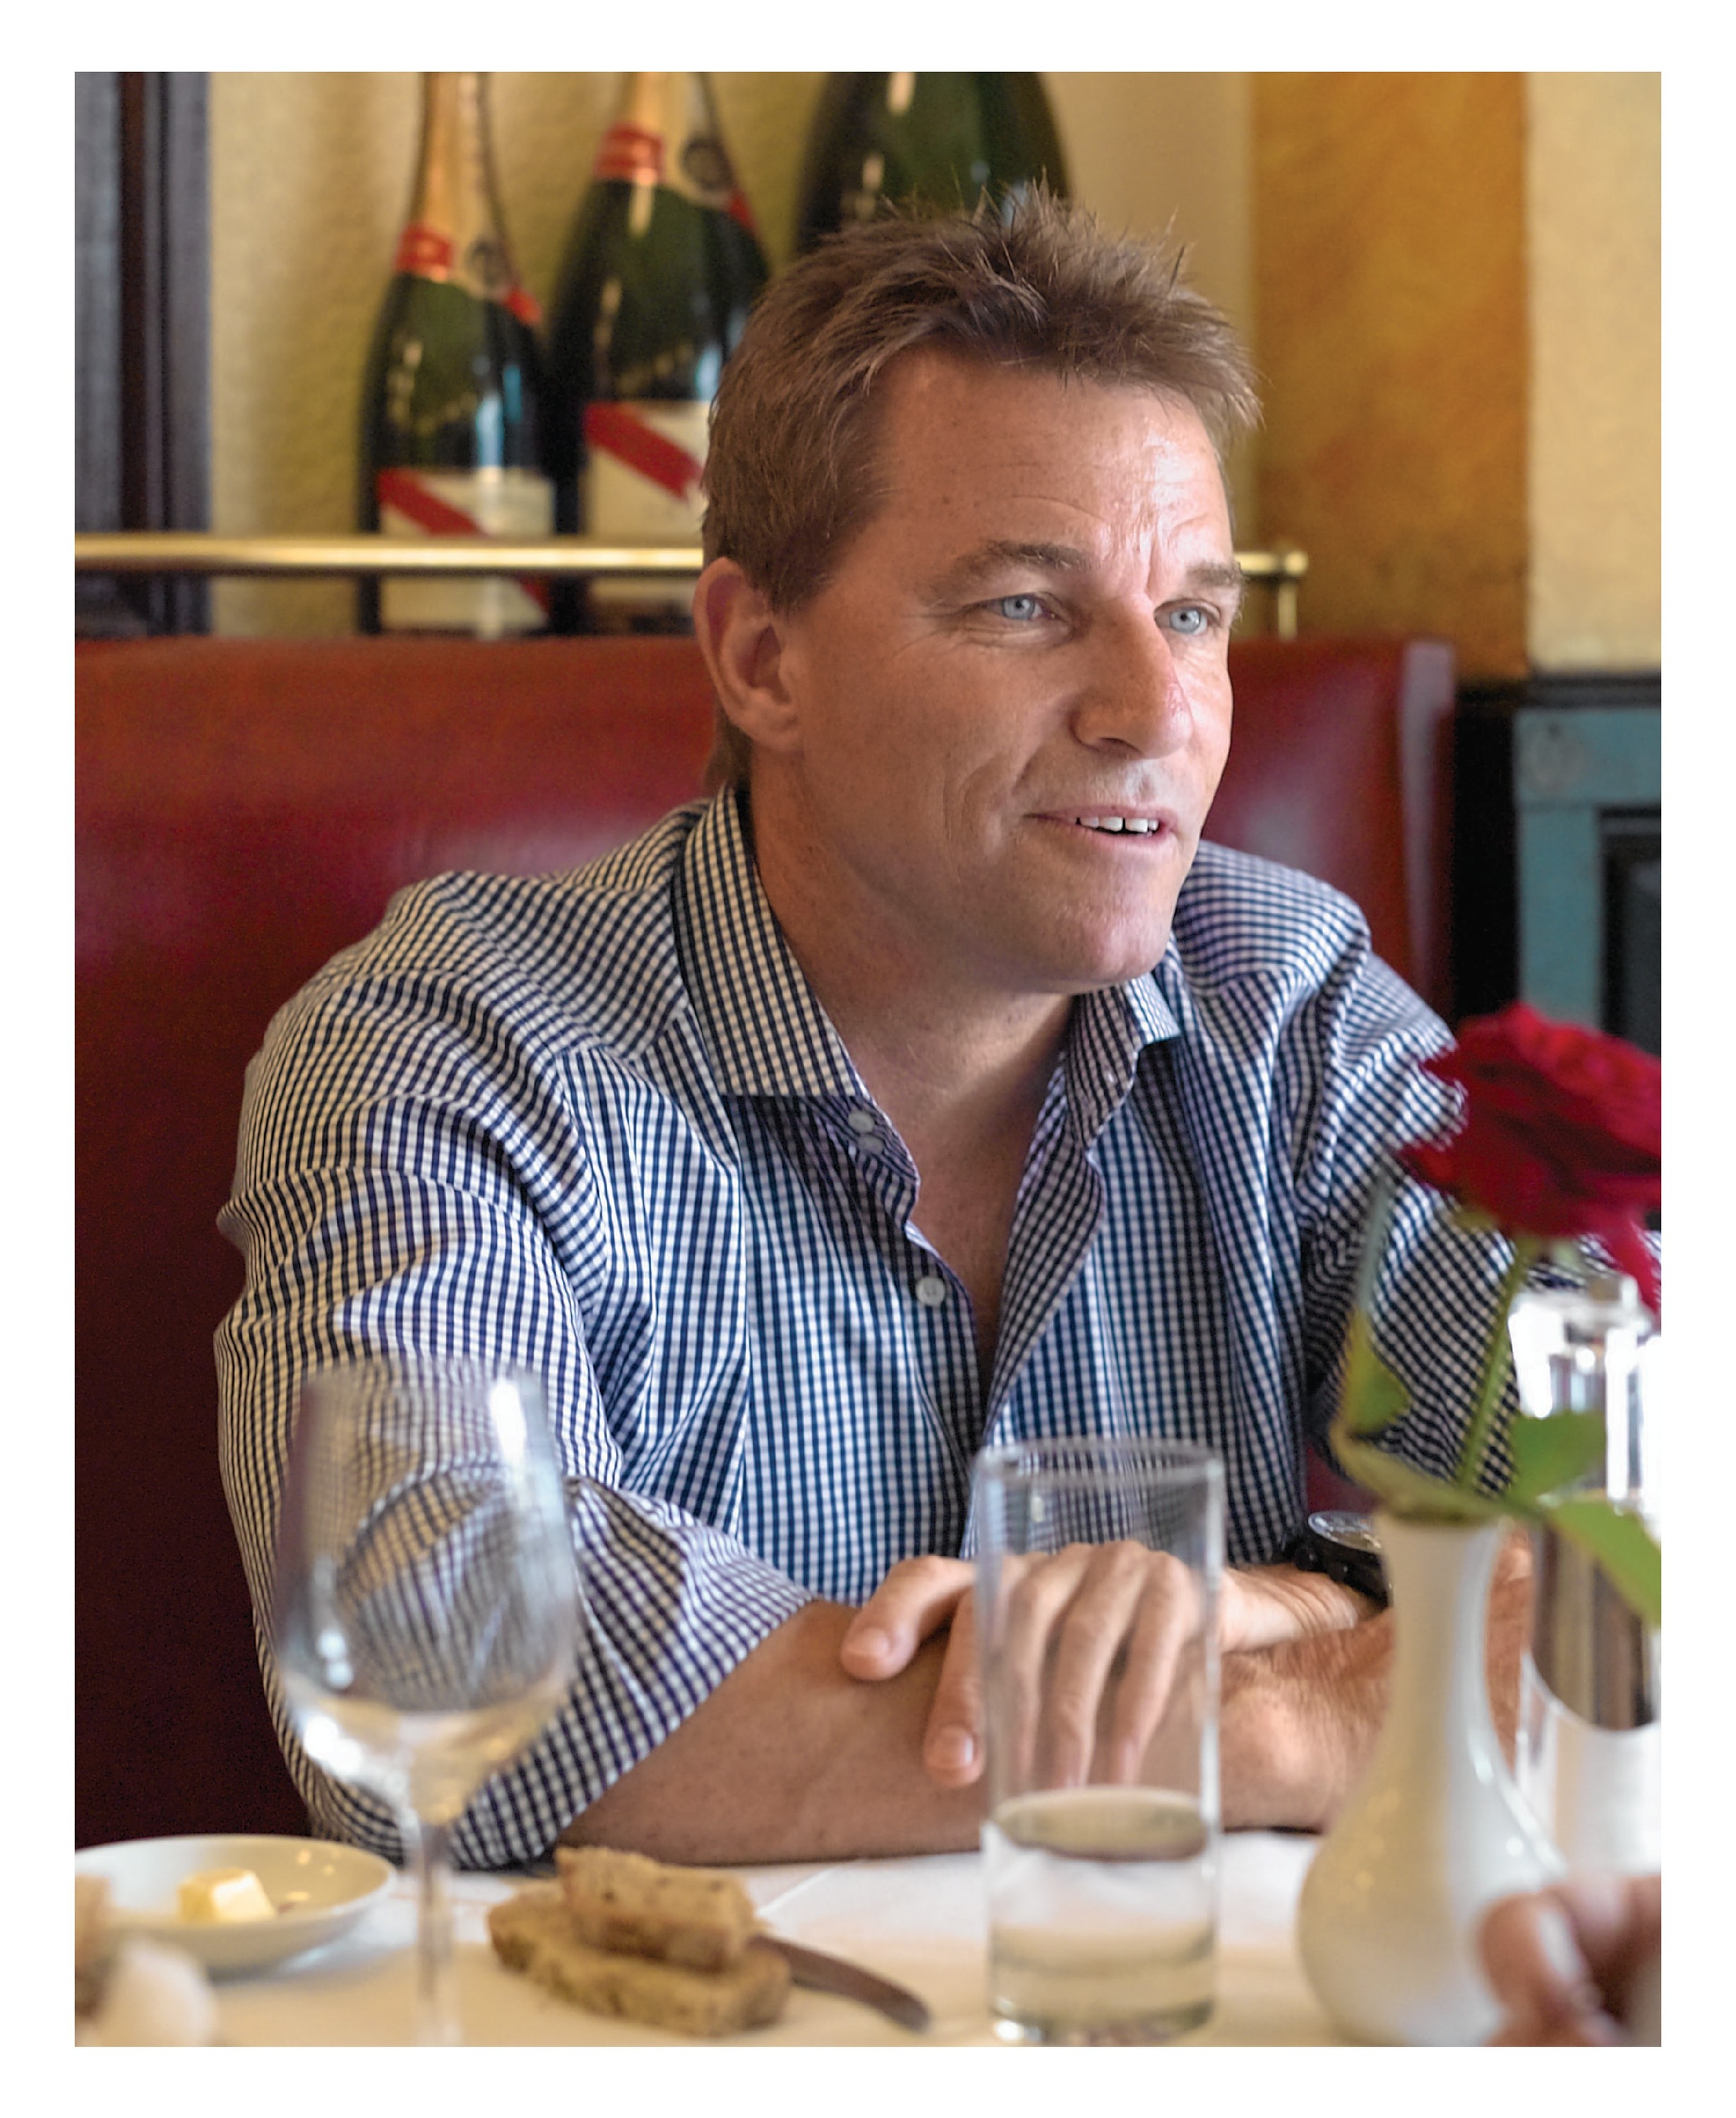 lunch with stefan johansson image